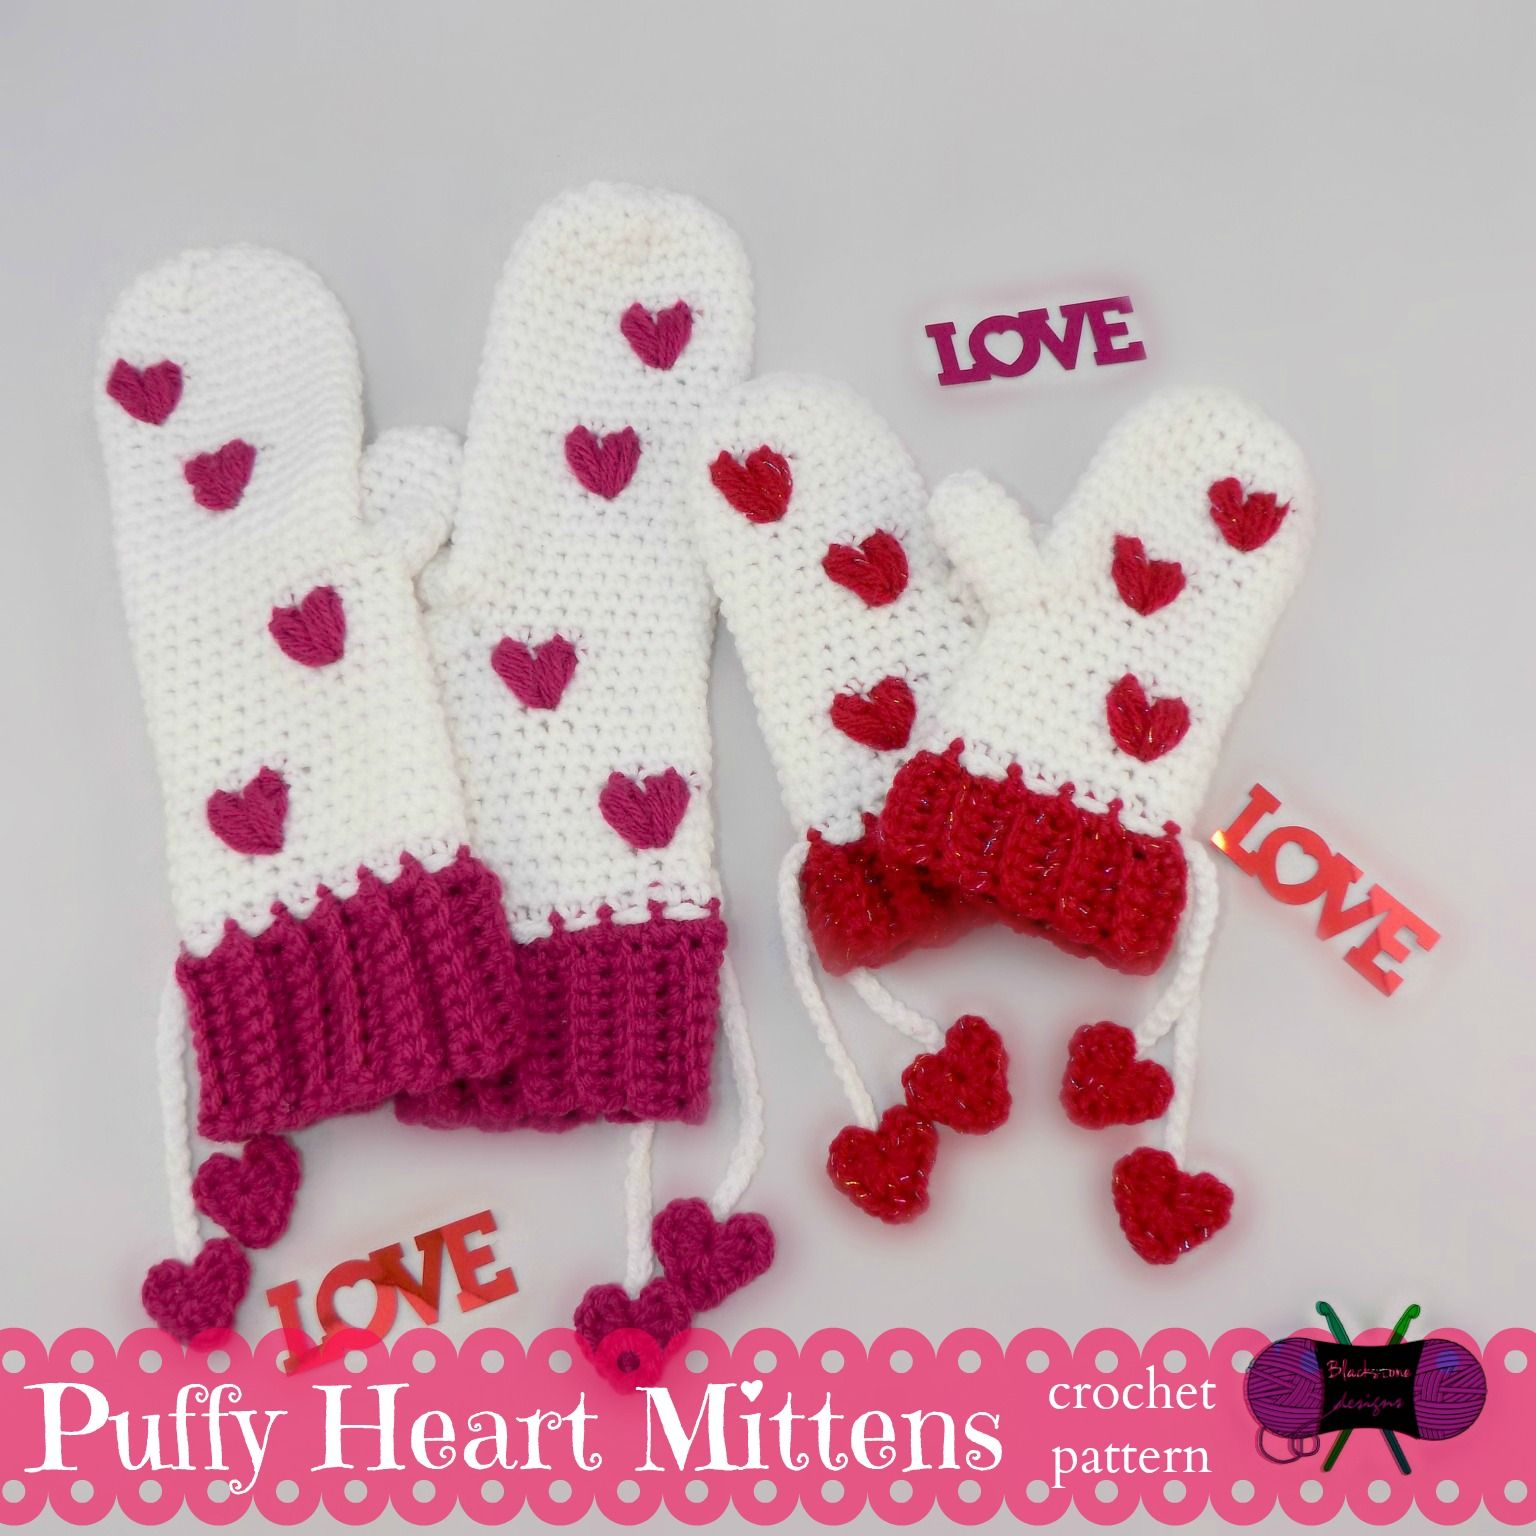 Puffy Heart Mittens pattern by Sonya Blackstone | Guantes